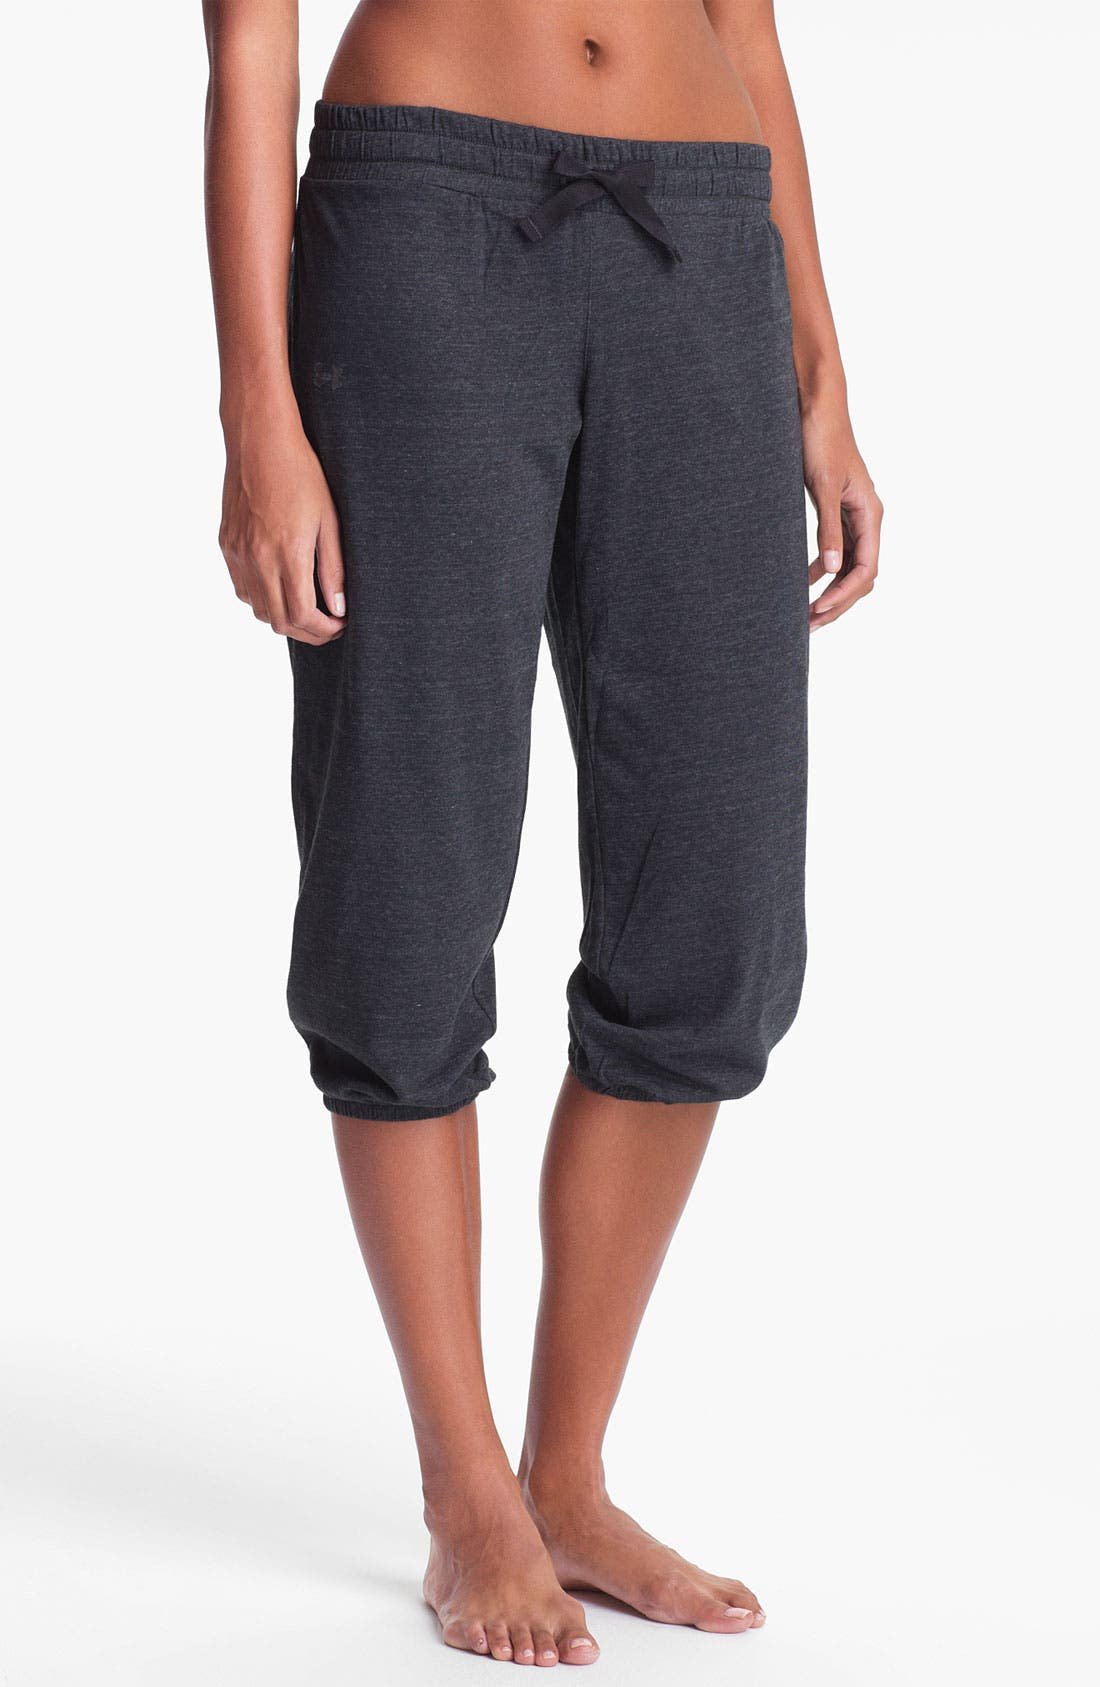 Alternate Image 1 Selected - Under Armour 'Undeniable' Charged Cotton® Capris